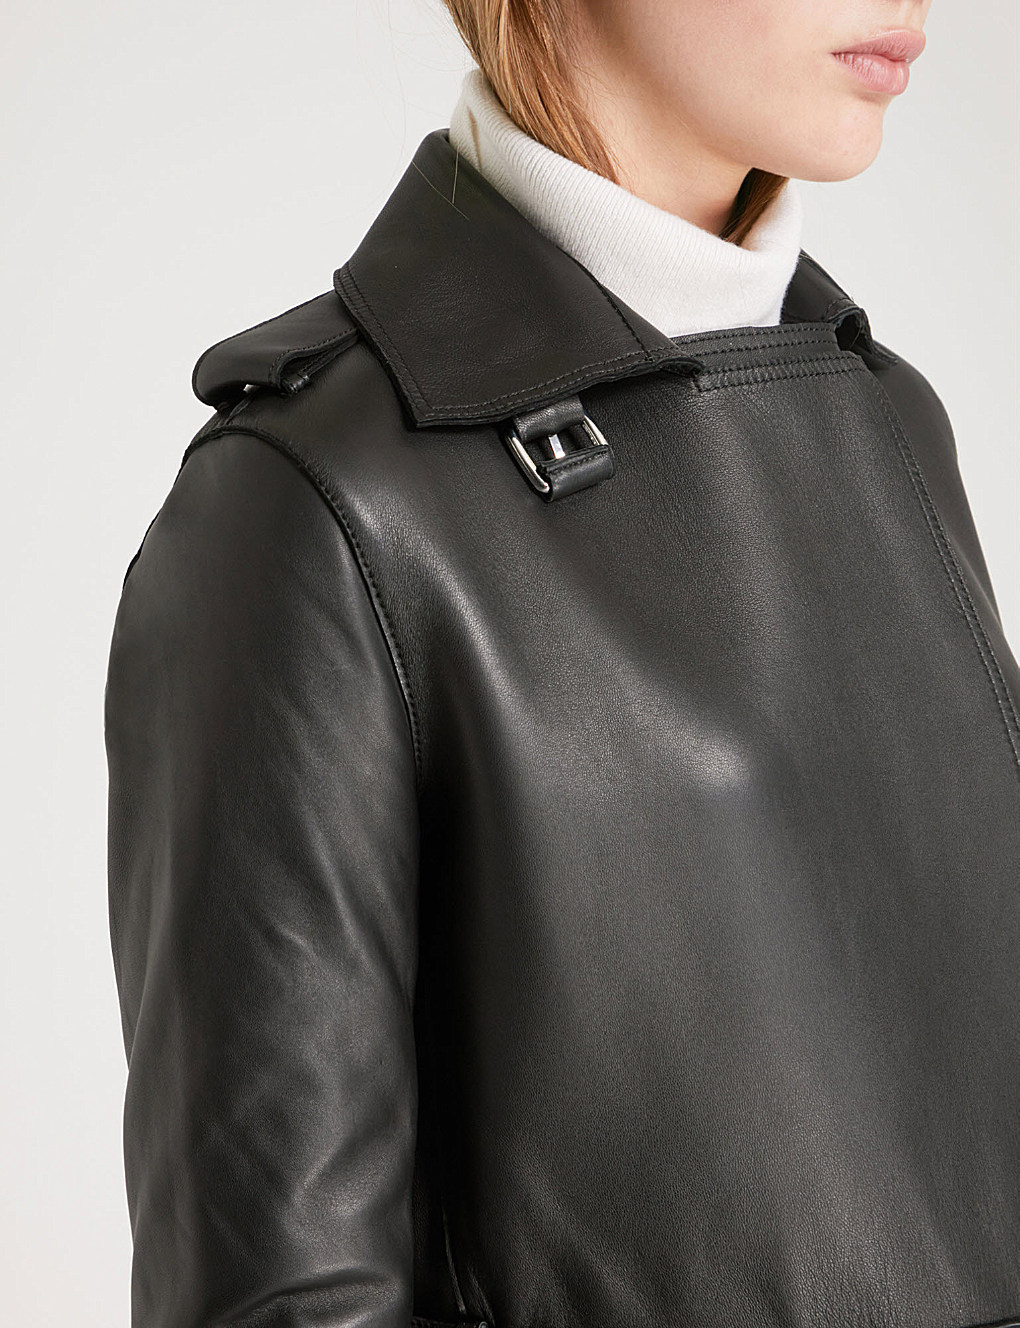 【海外限定】REISS レザーコート☆Emmerson leather trench coat